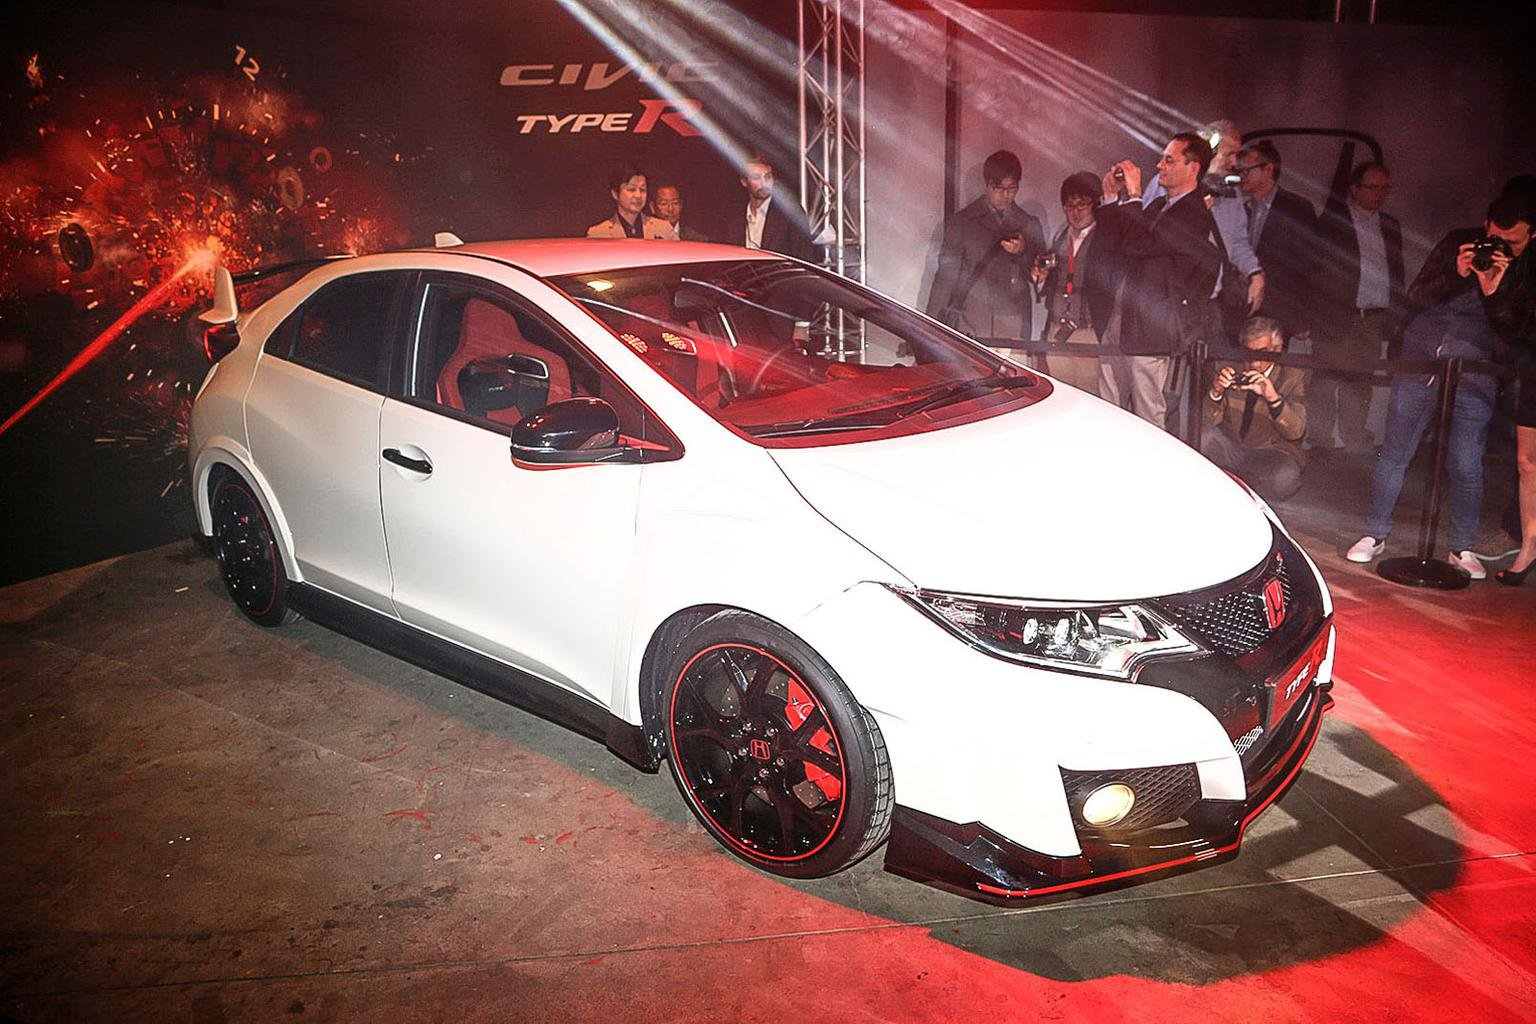 2015 Honda Civic Type R - pictures, specification and on-sale details